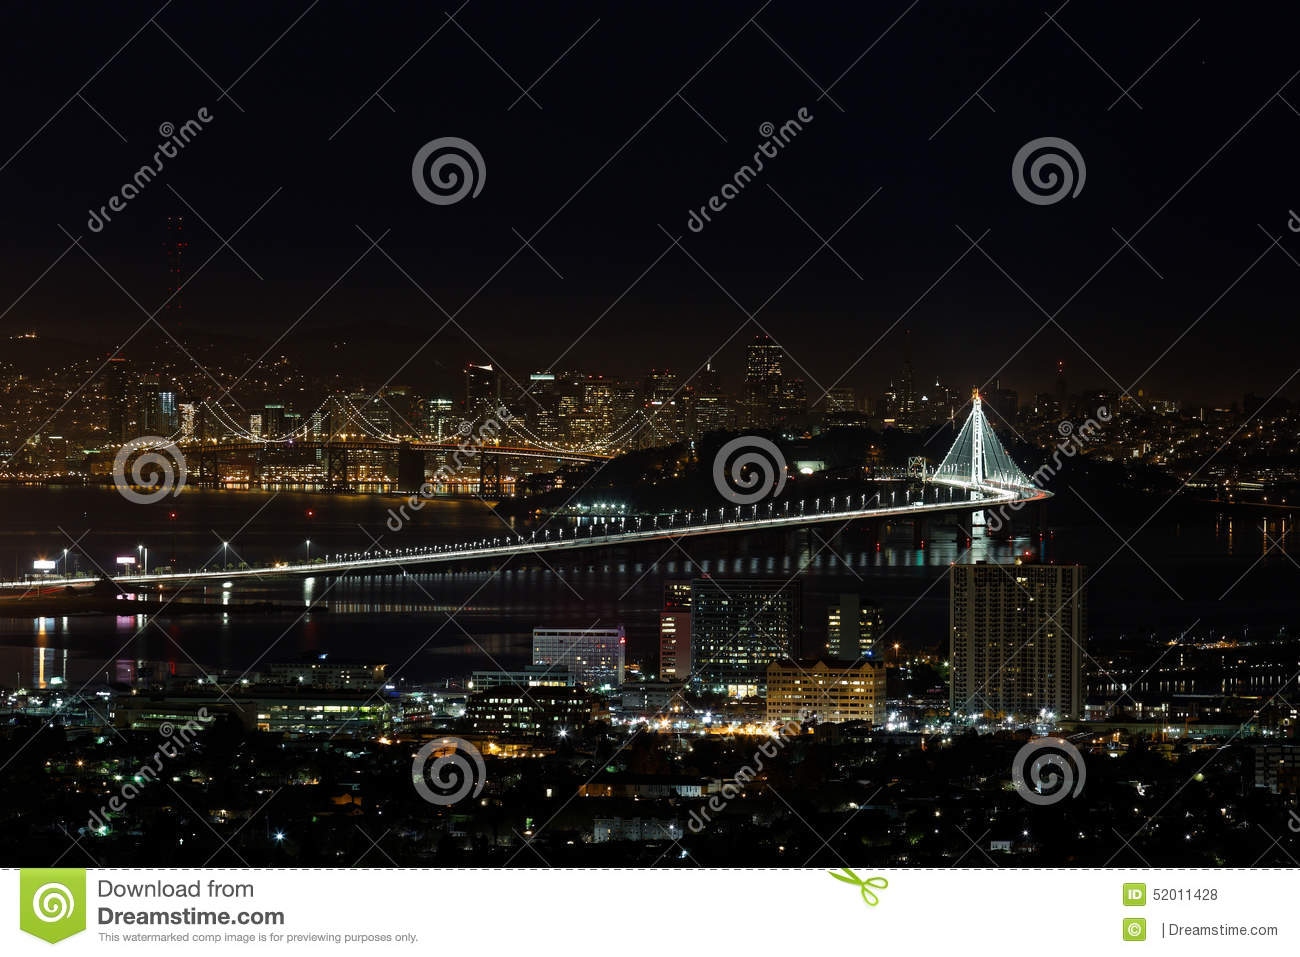 San Francisco Oakland Bay Bridge at Night (New Eastern Span)